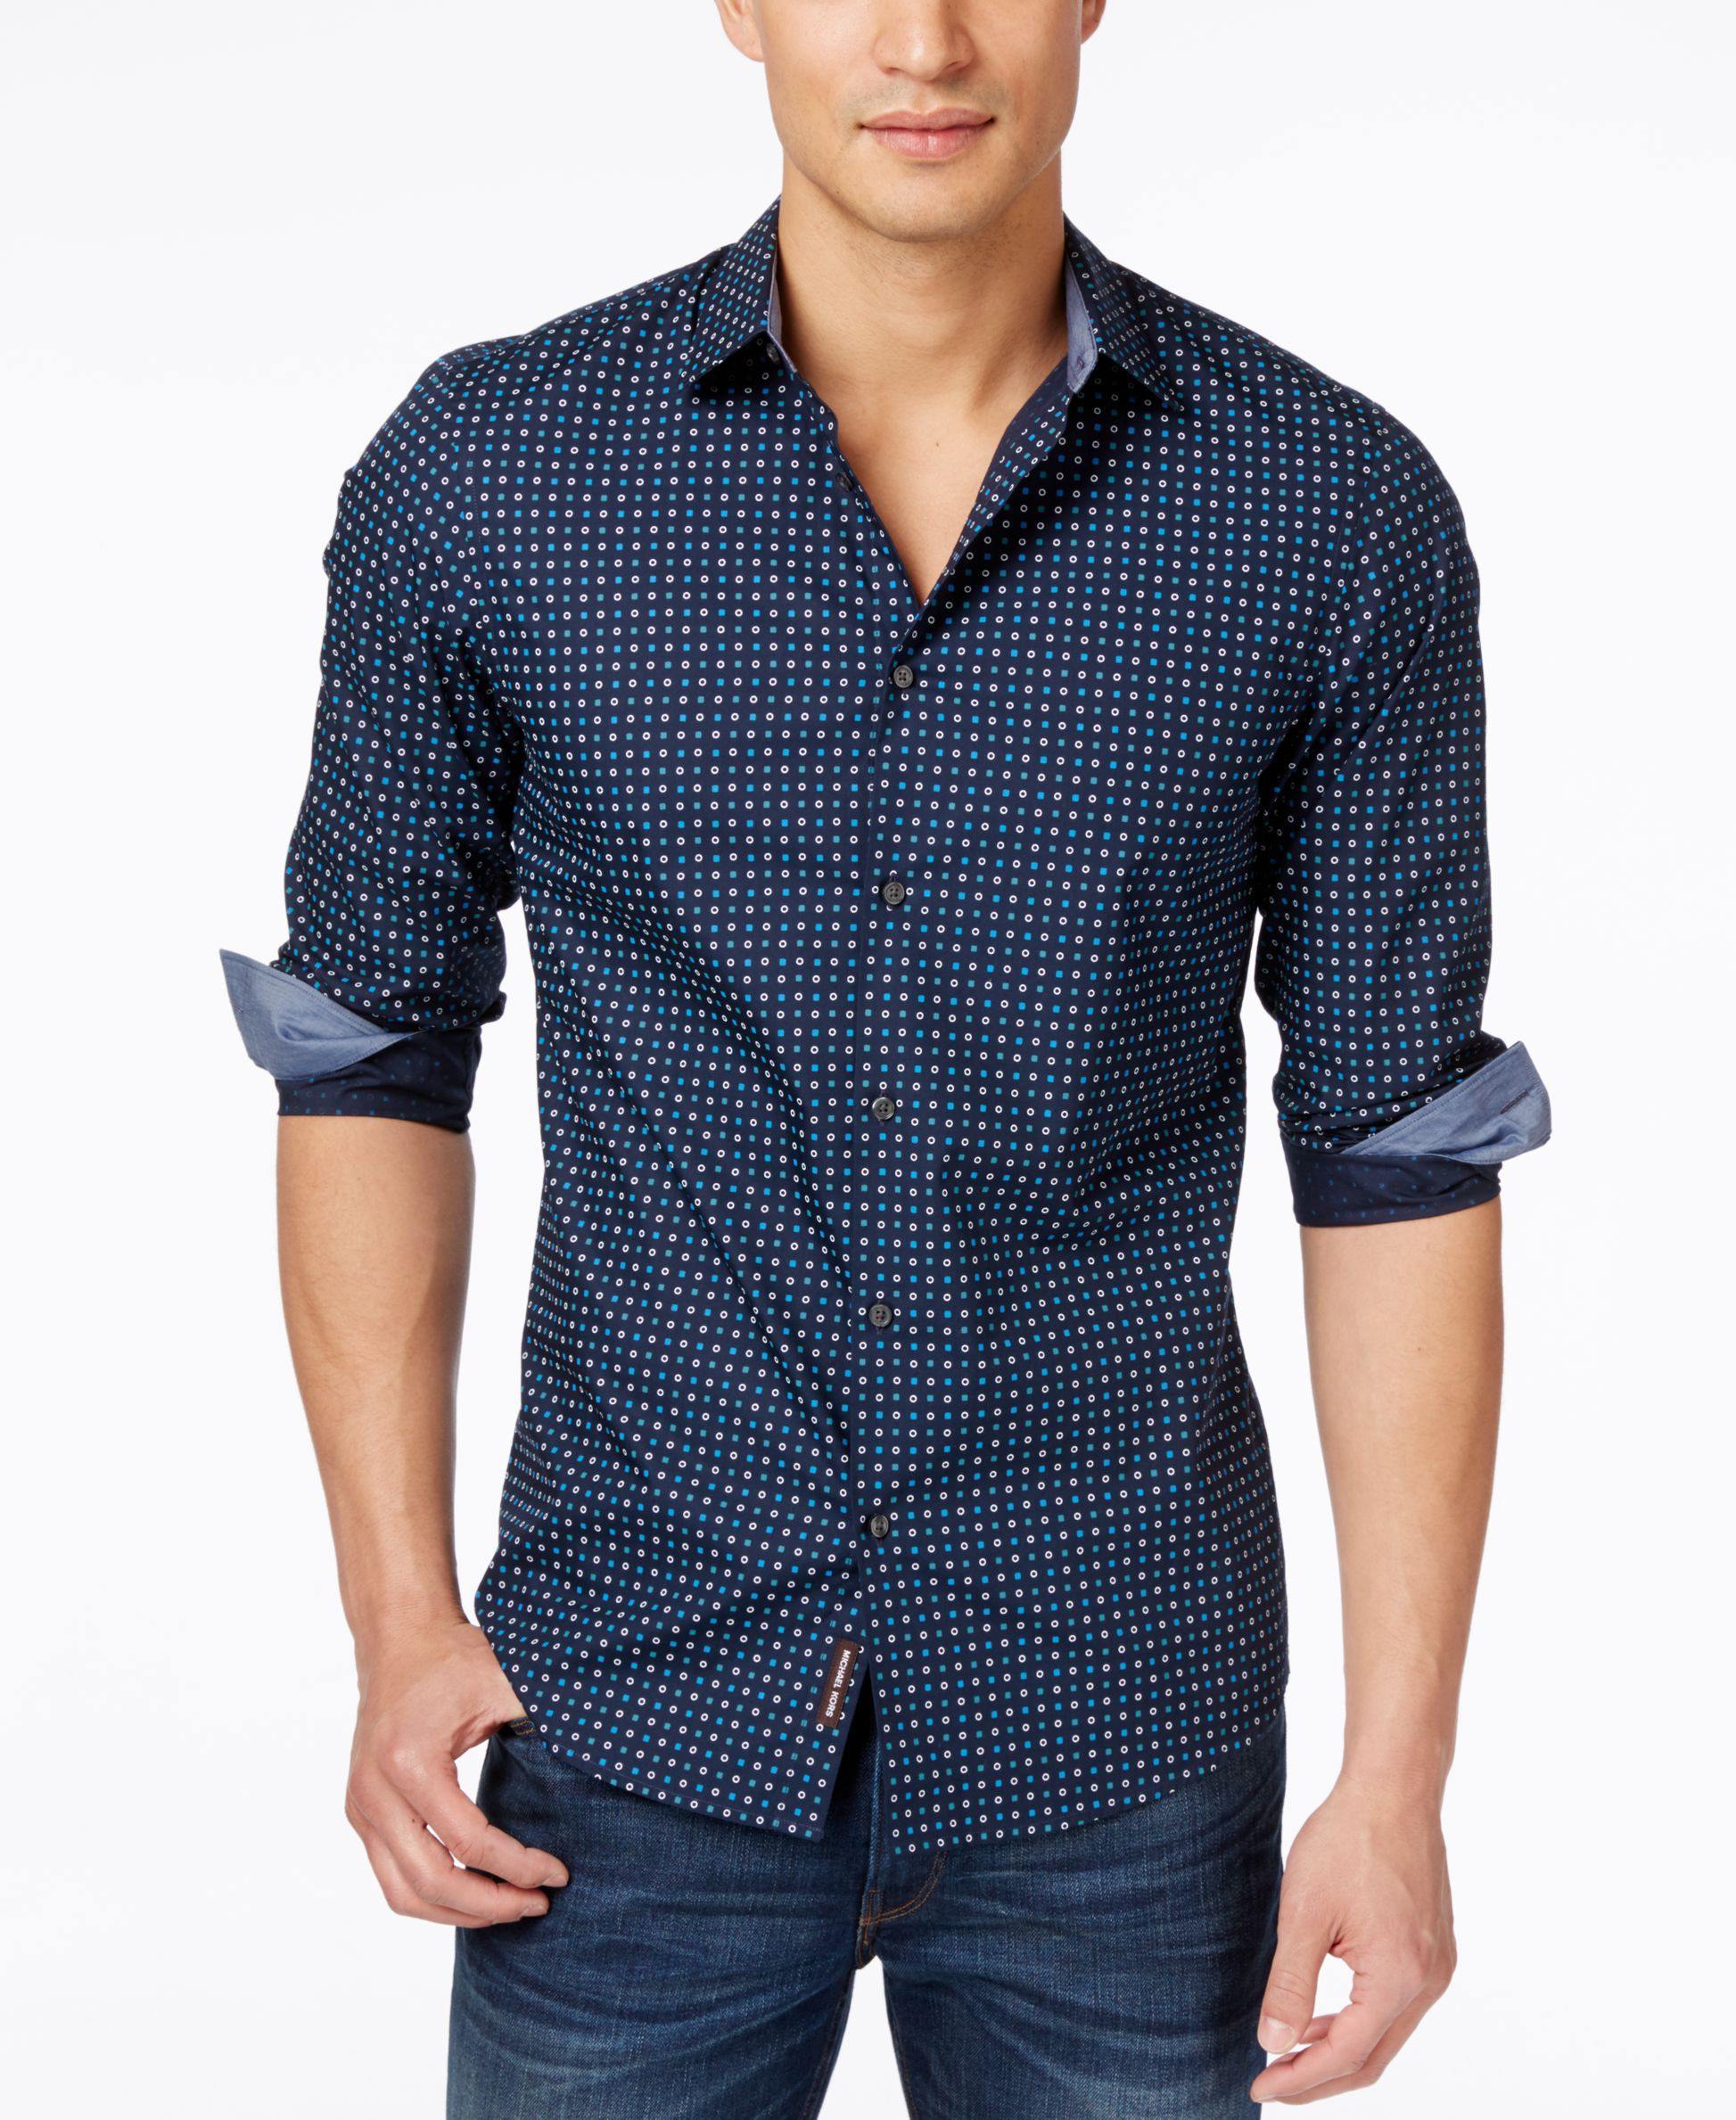 Michael Kors Men's Damien Slim-Fit Mini-Geometric Print Long-Sleeve Shirt